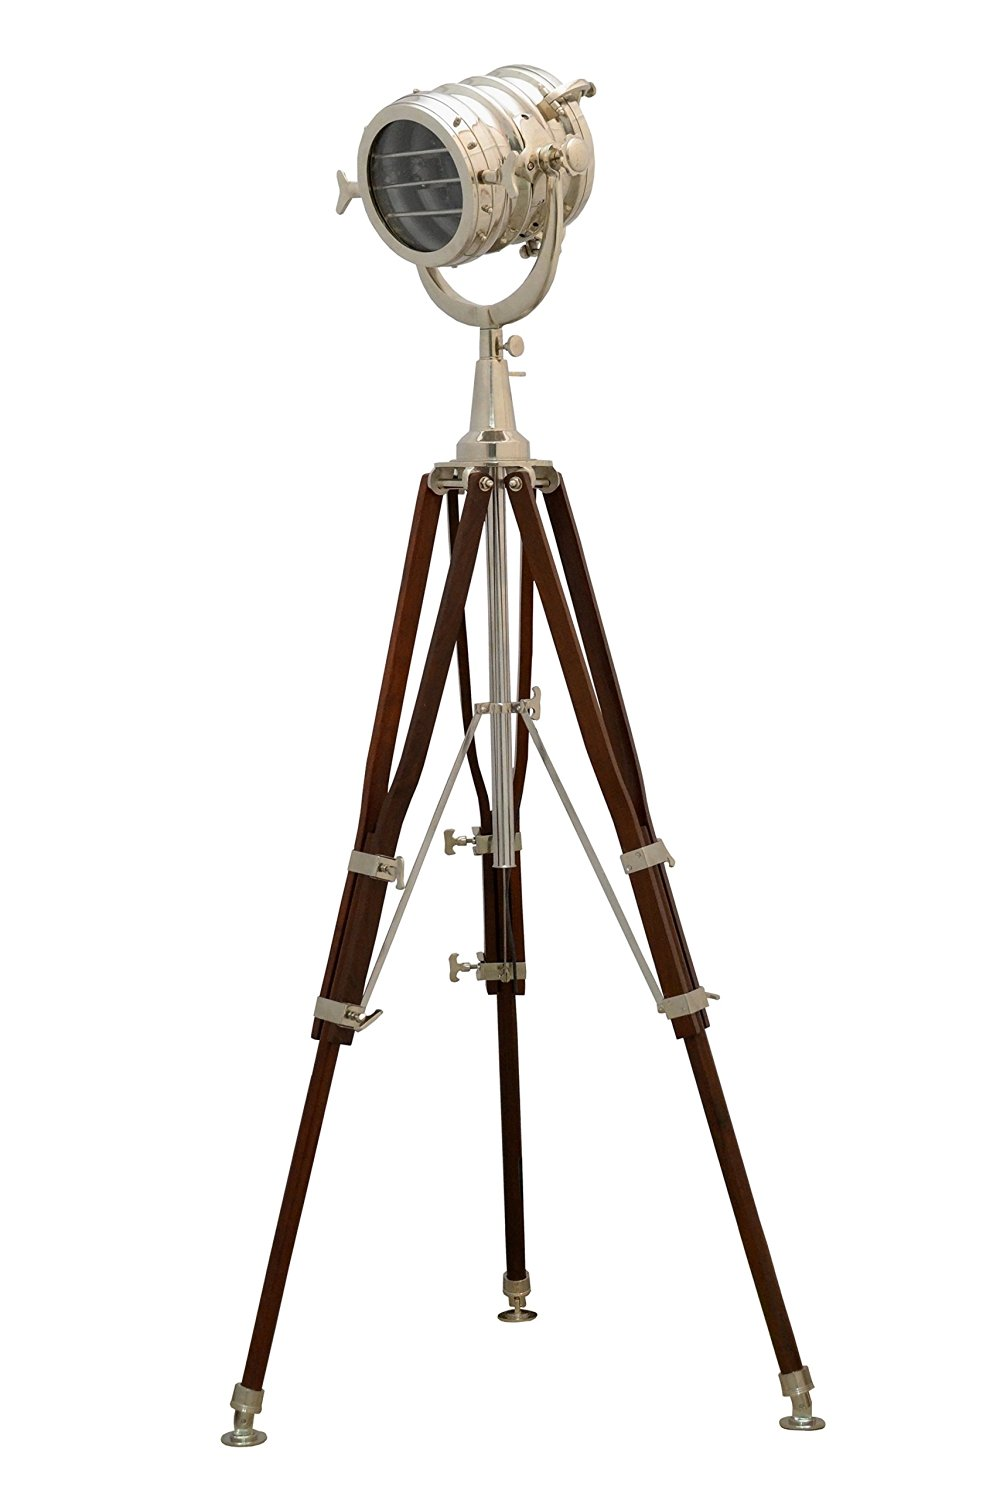 Br Nautical Vintage Marine Tripod Floor Lamp Search Light Cinema Studio Prop With